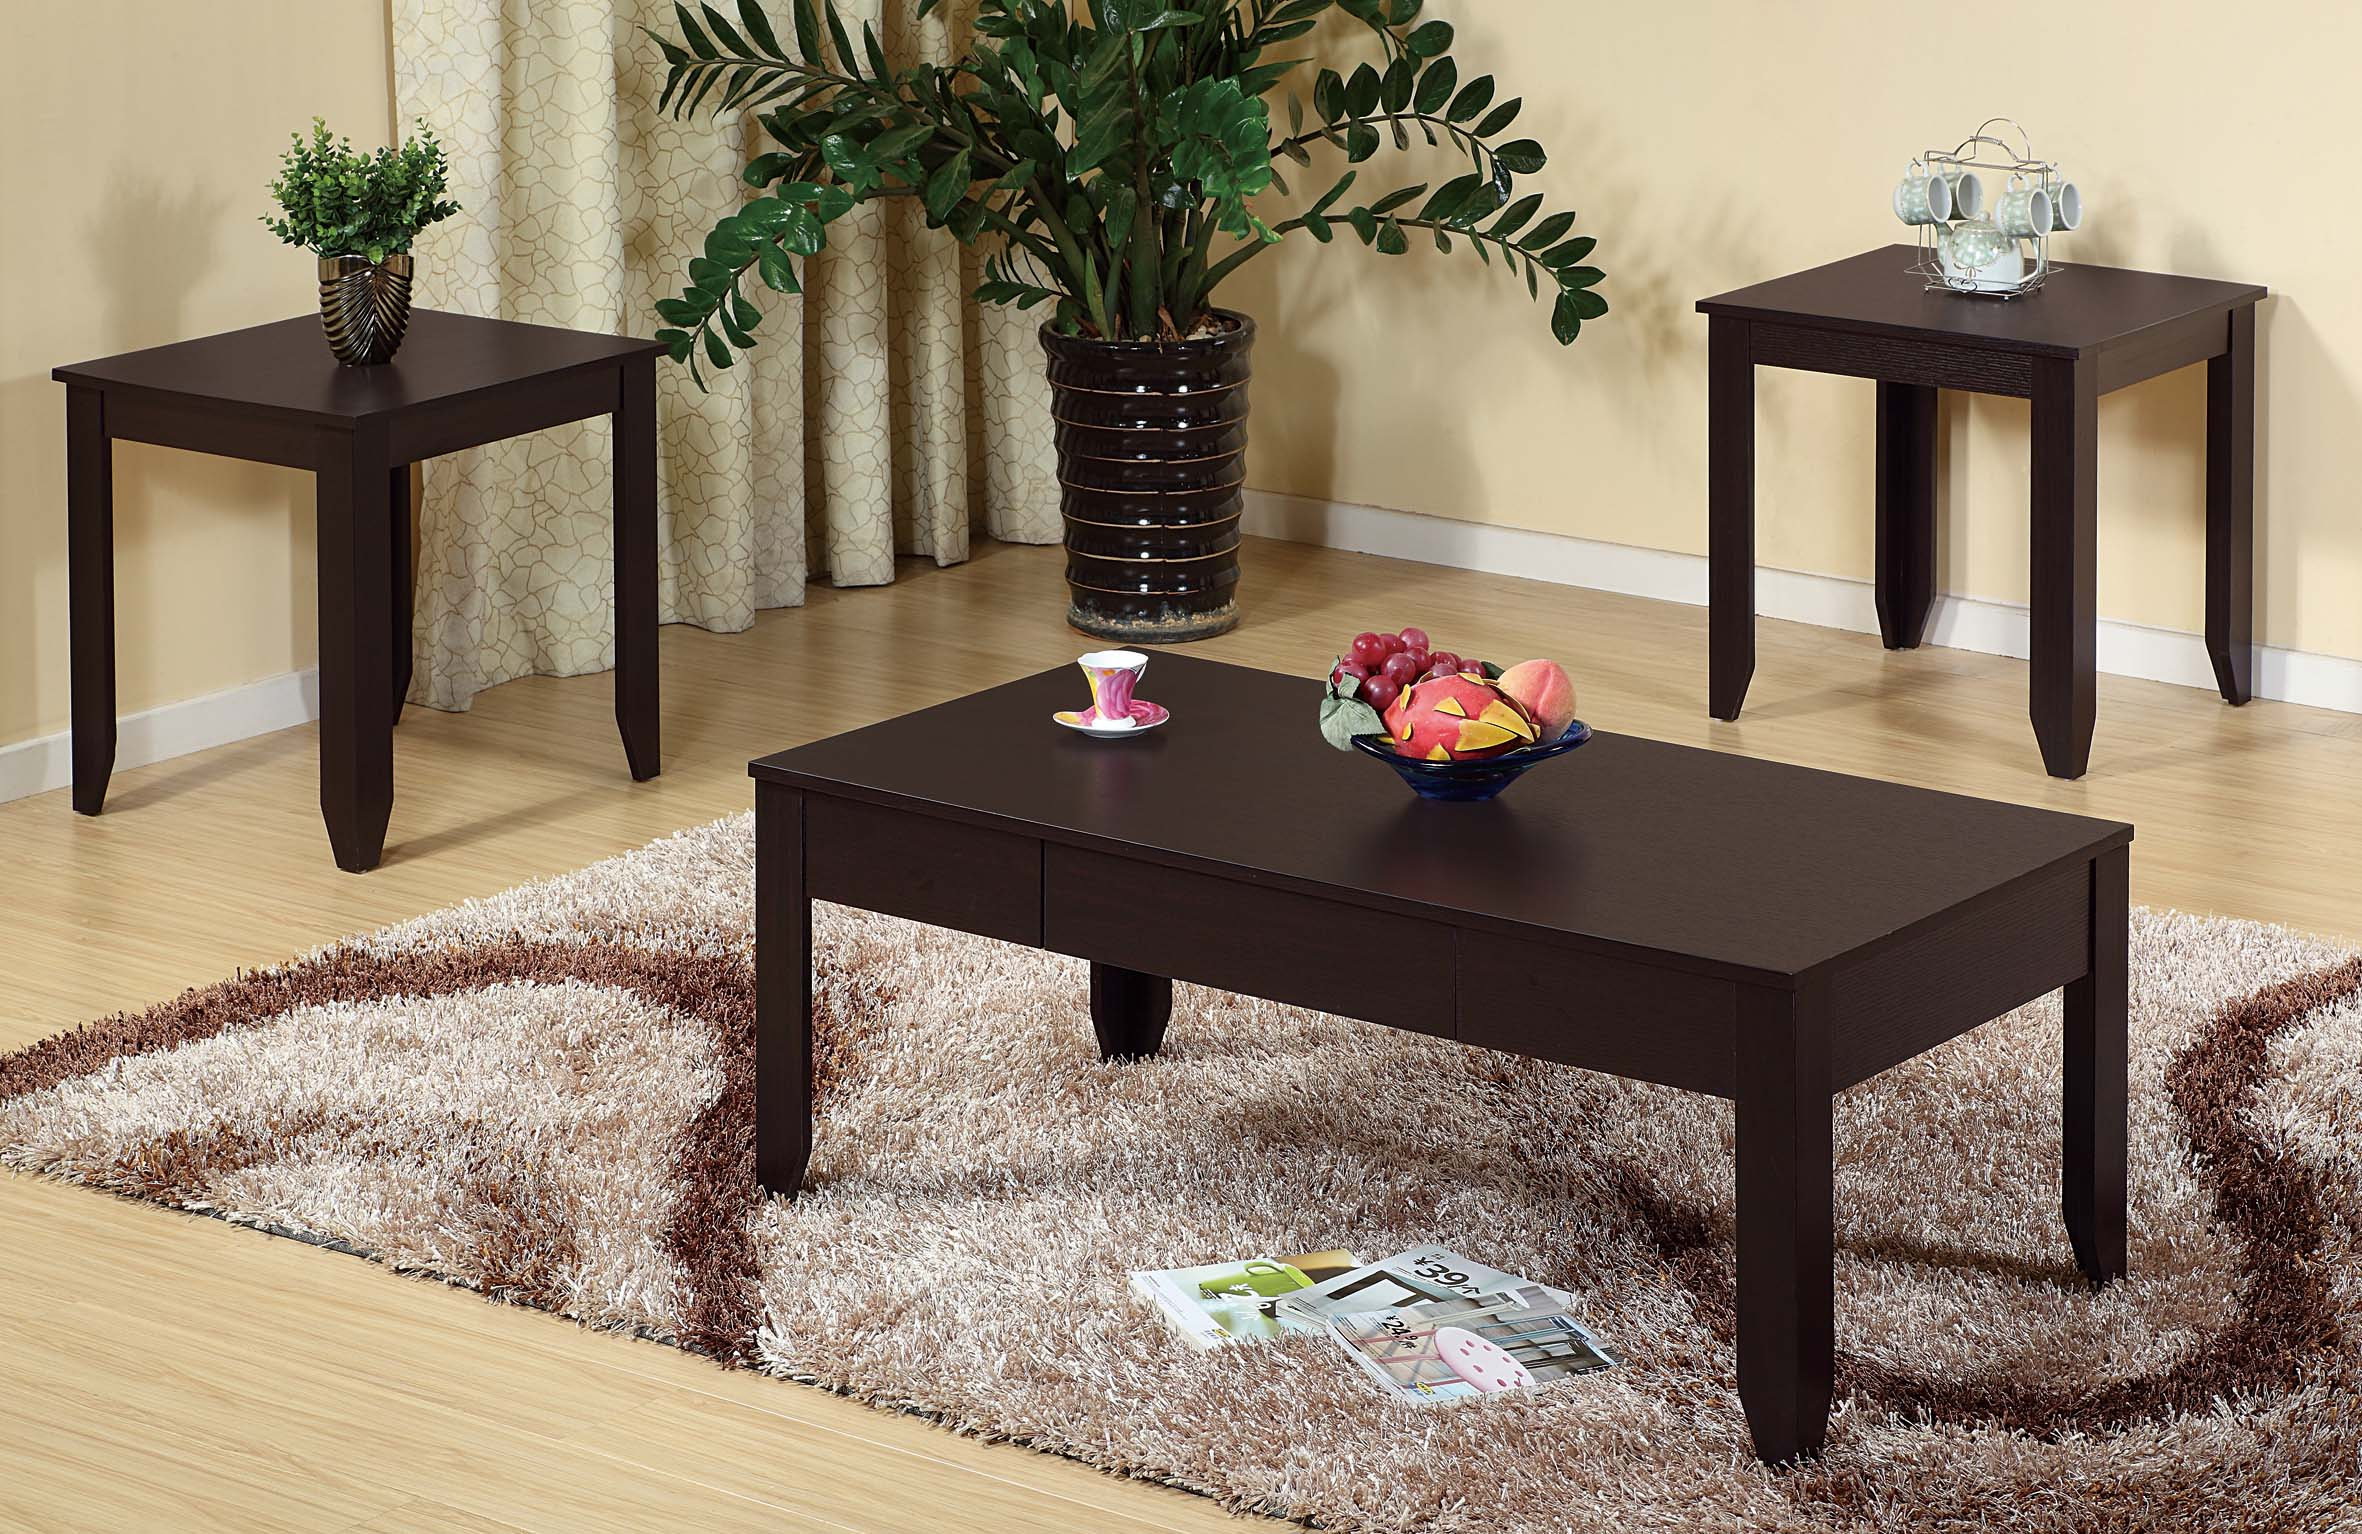 Pc Coffee End Tables Coffee Table Offers One Drawer On Metal - Coffee table depth